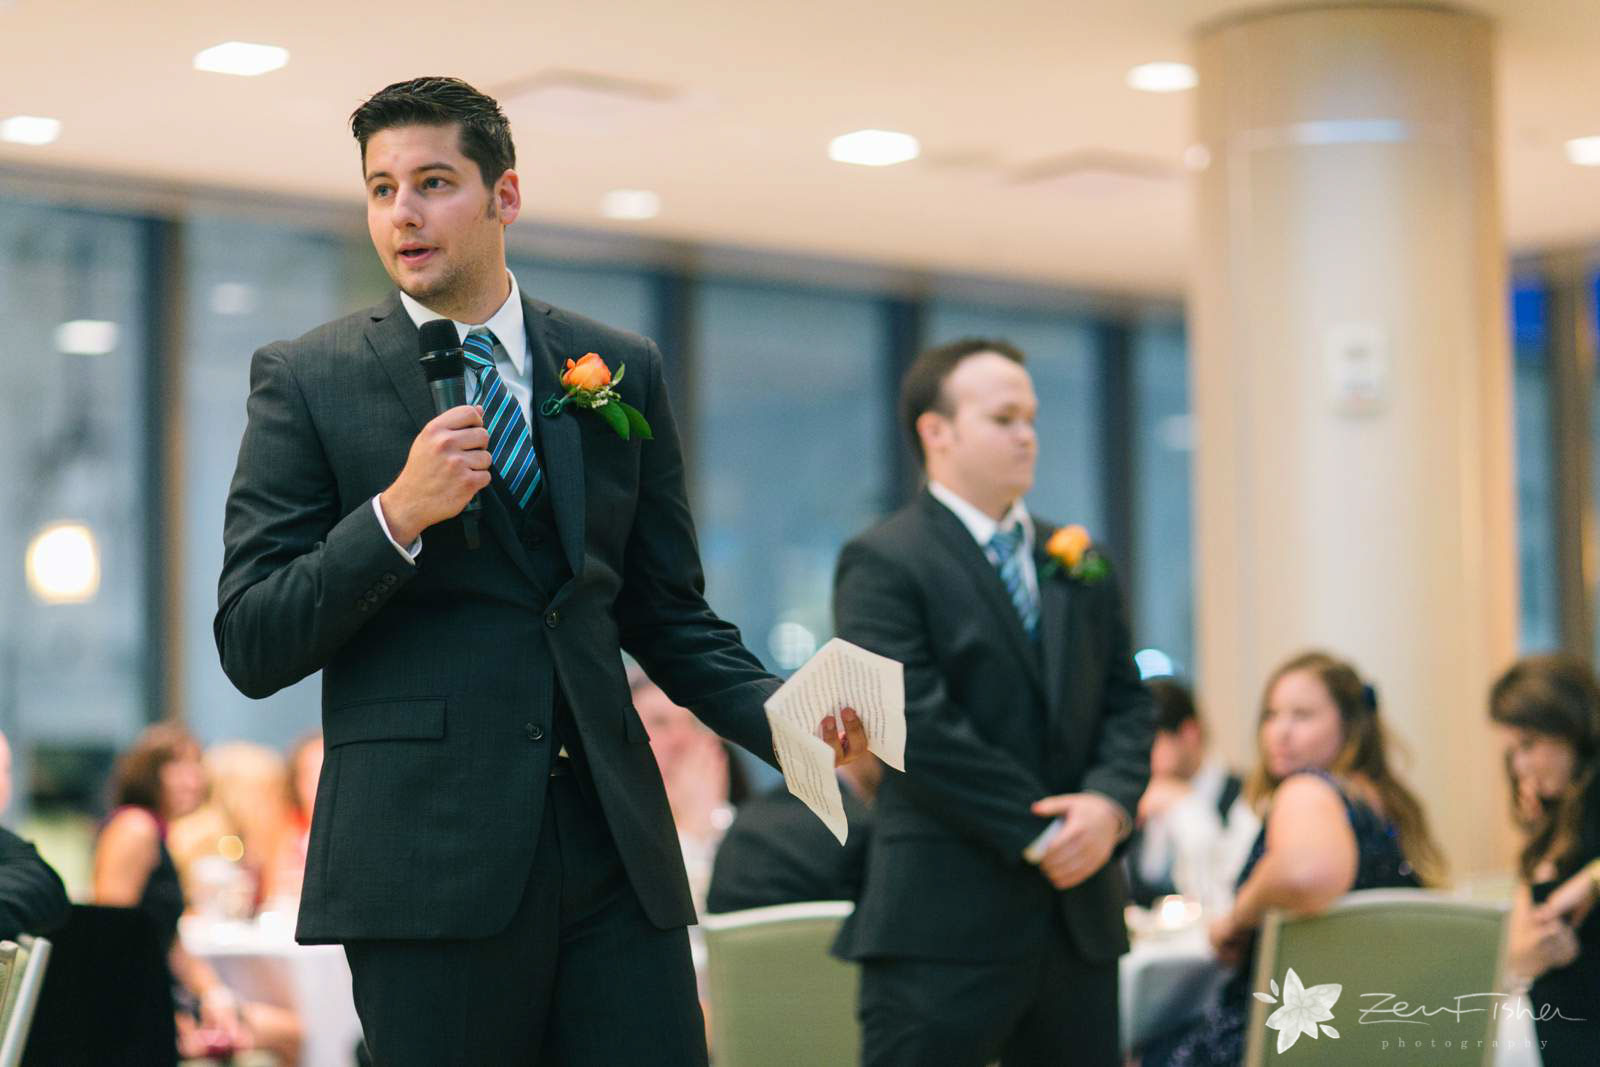 Groomsmen making a toast during wedding reception at Seaport Hotel Boston.